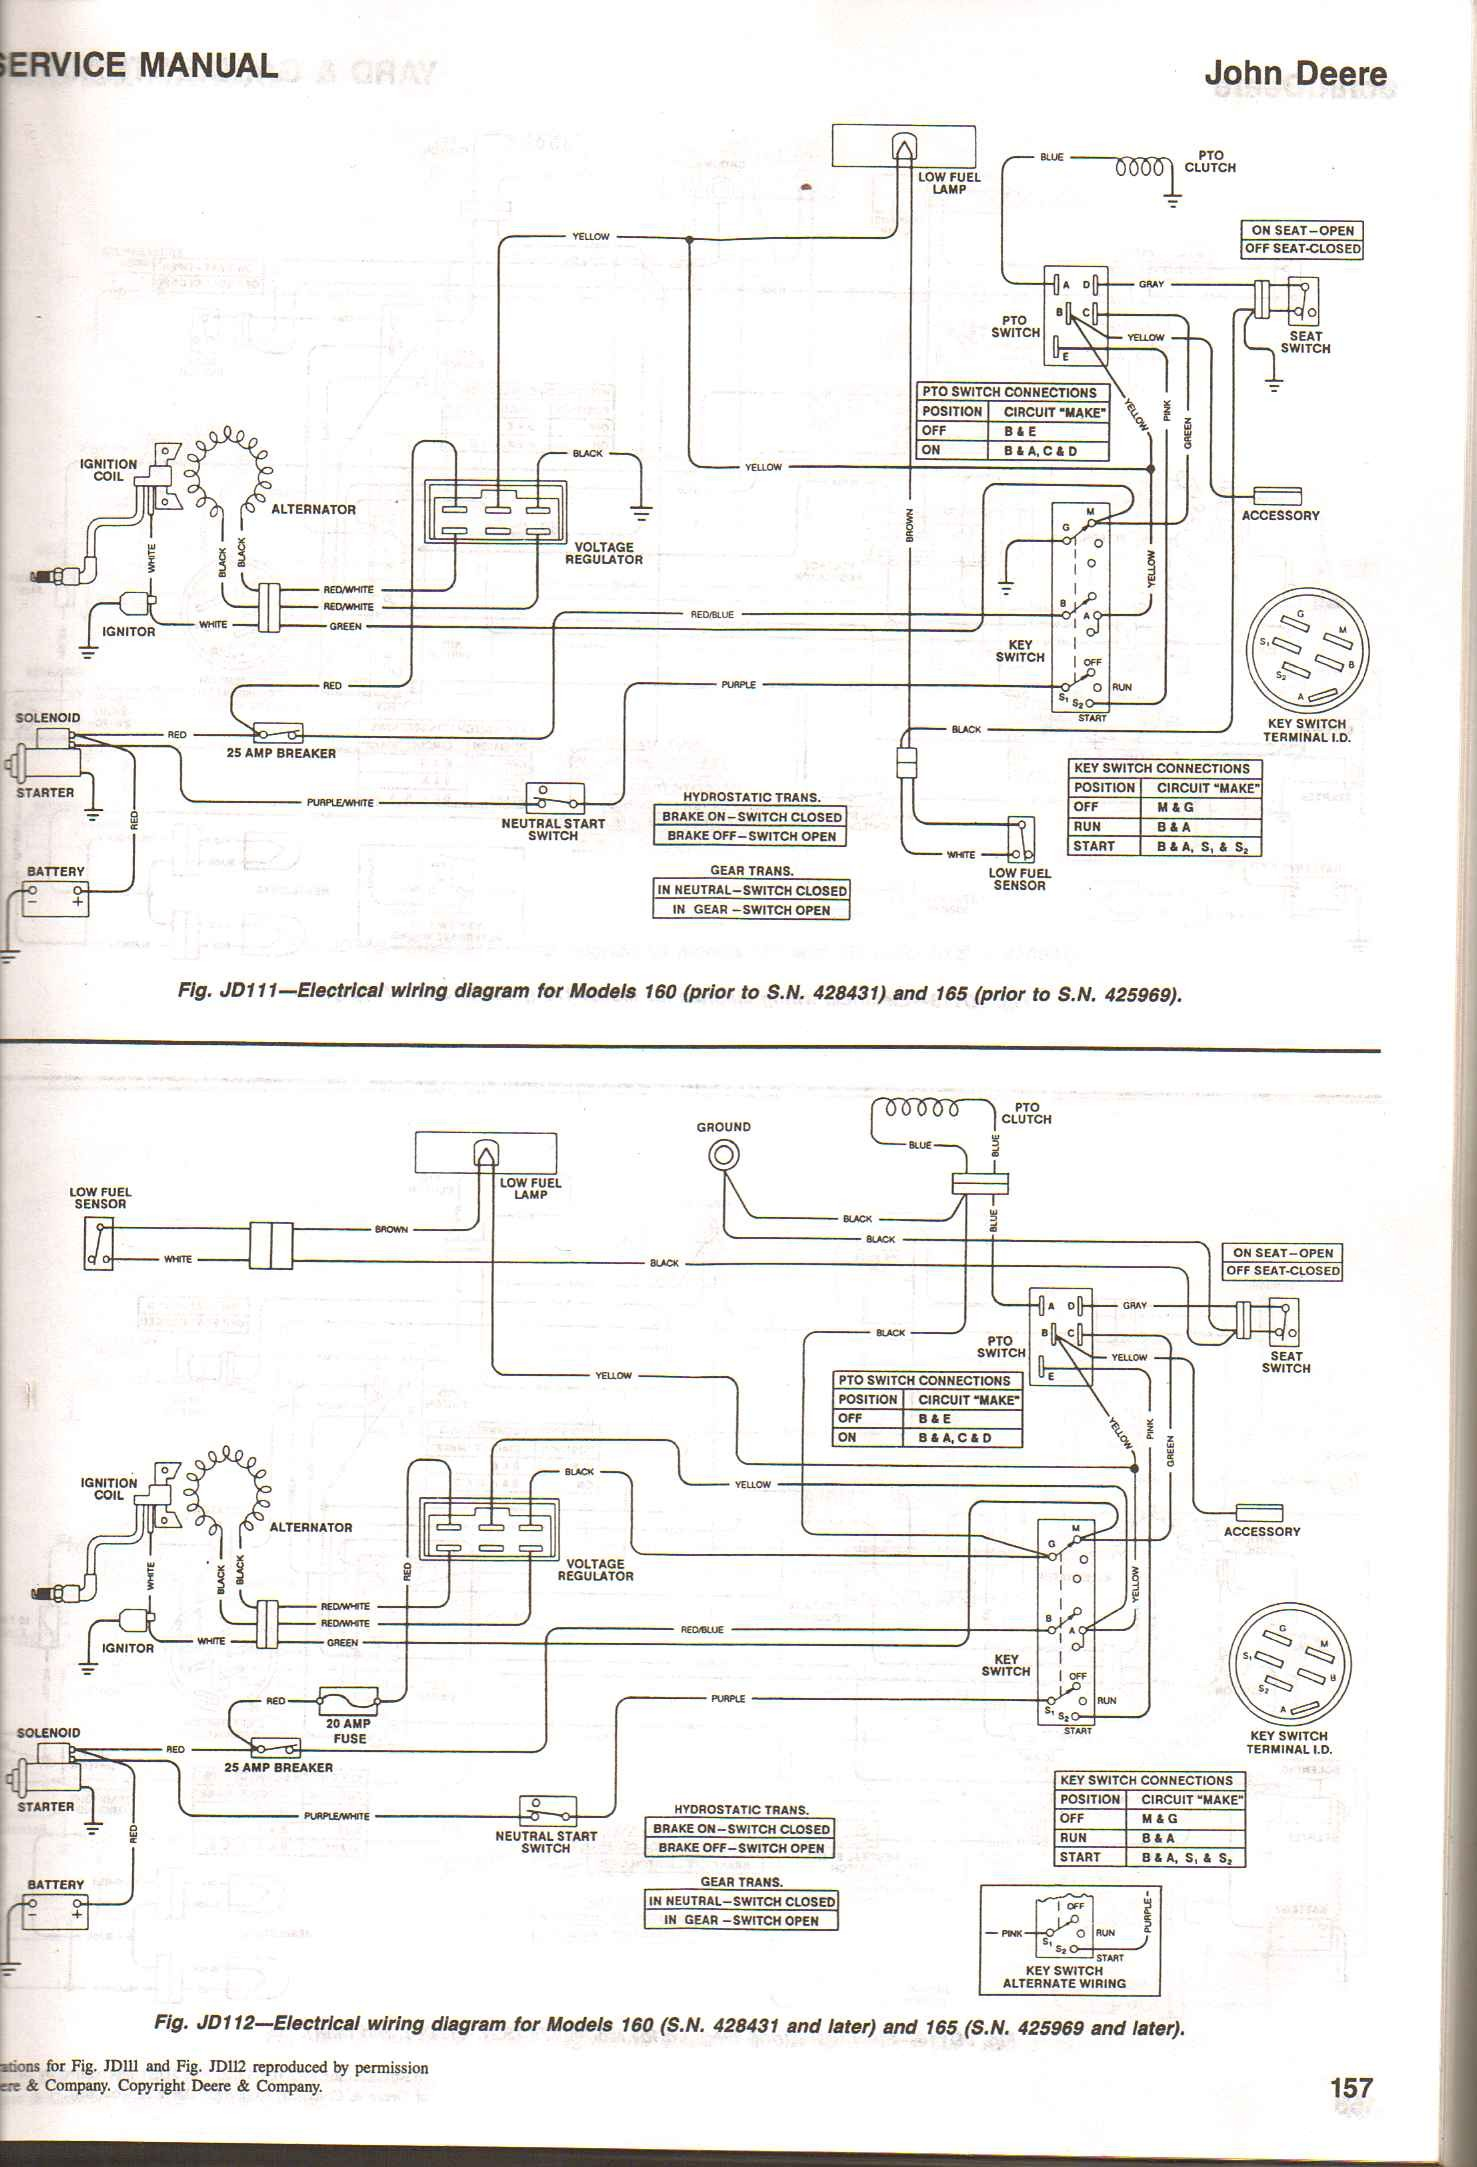 A Wiring Diagram for A 345 Jd Tractor Rk 2830] John Deere Tractor Wiring Schematics Schematic Wiring Of A Wiring Diagram for A 345 Jd Tractor